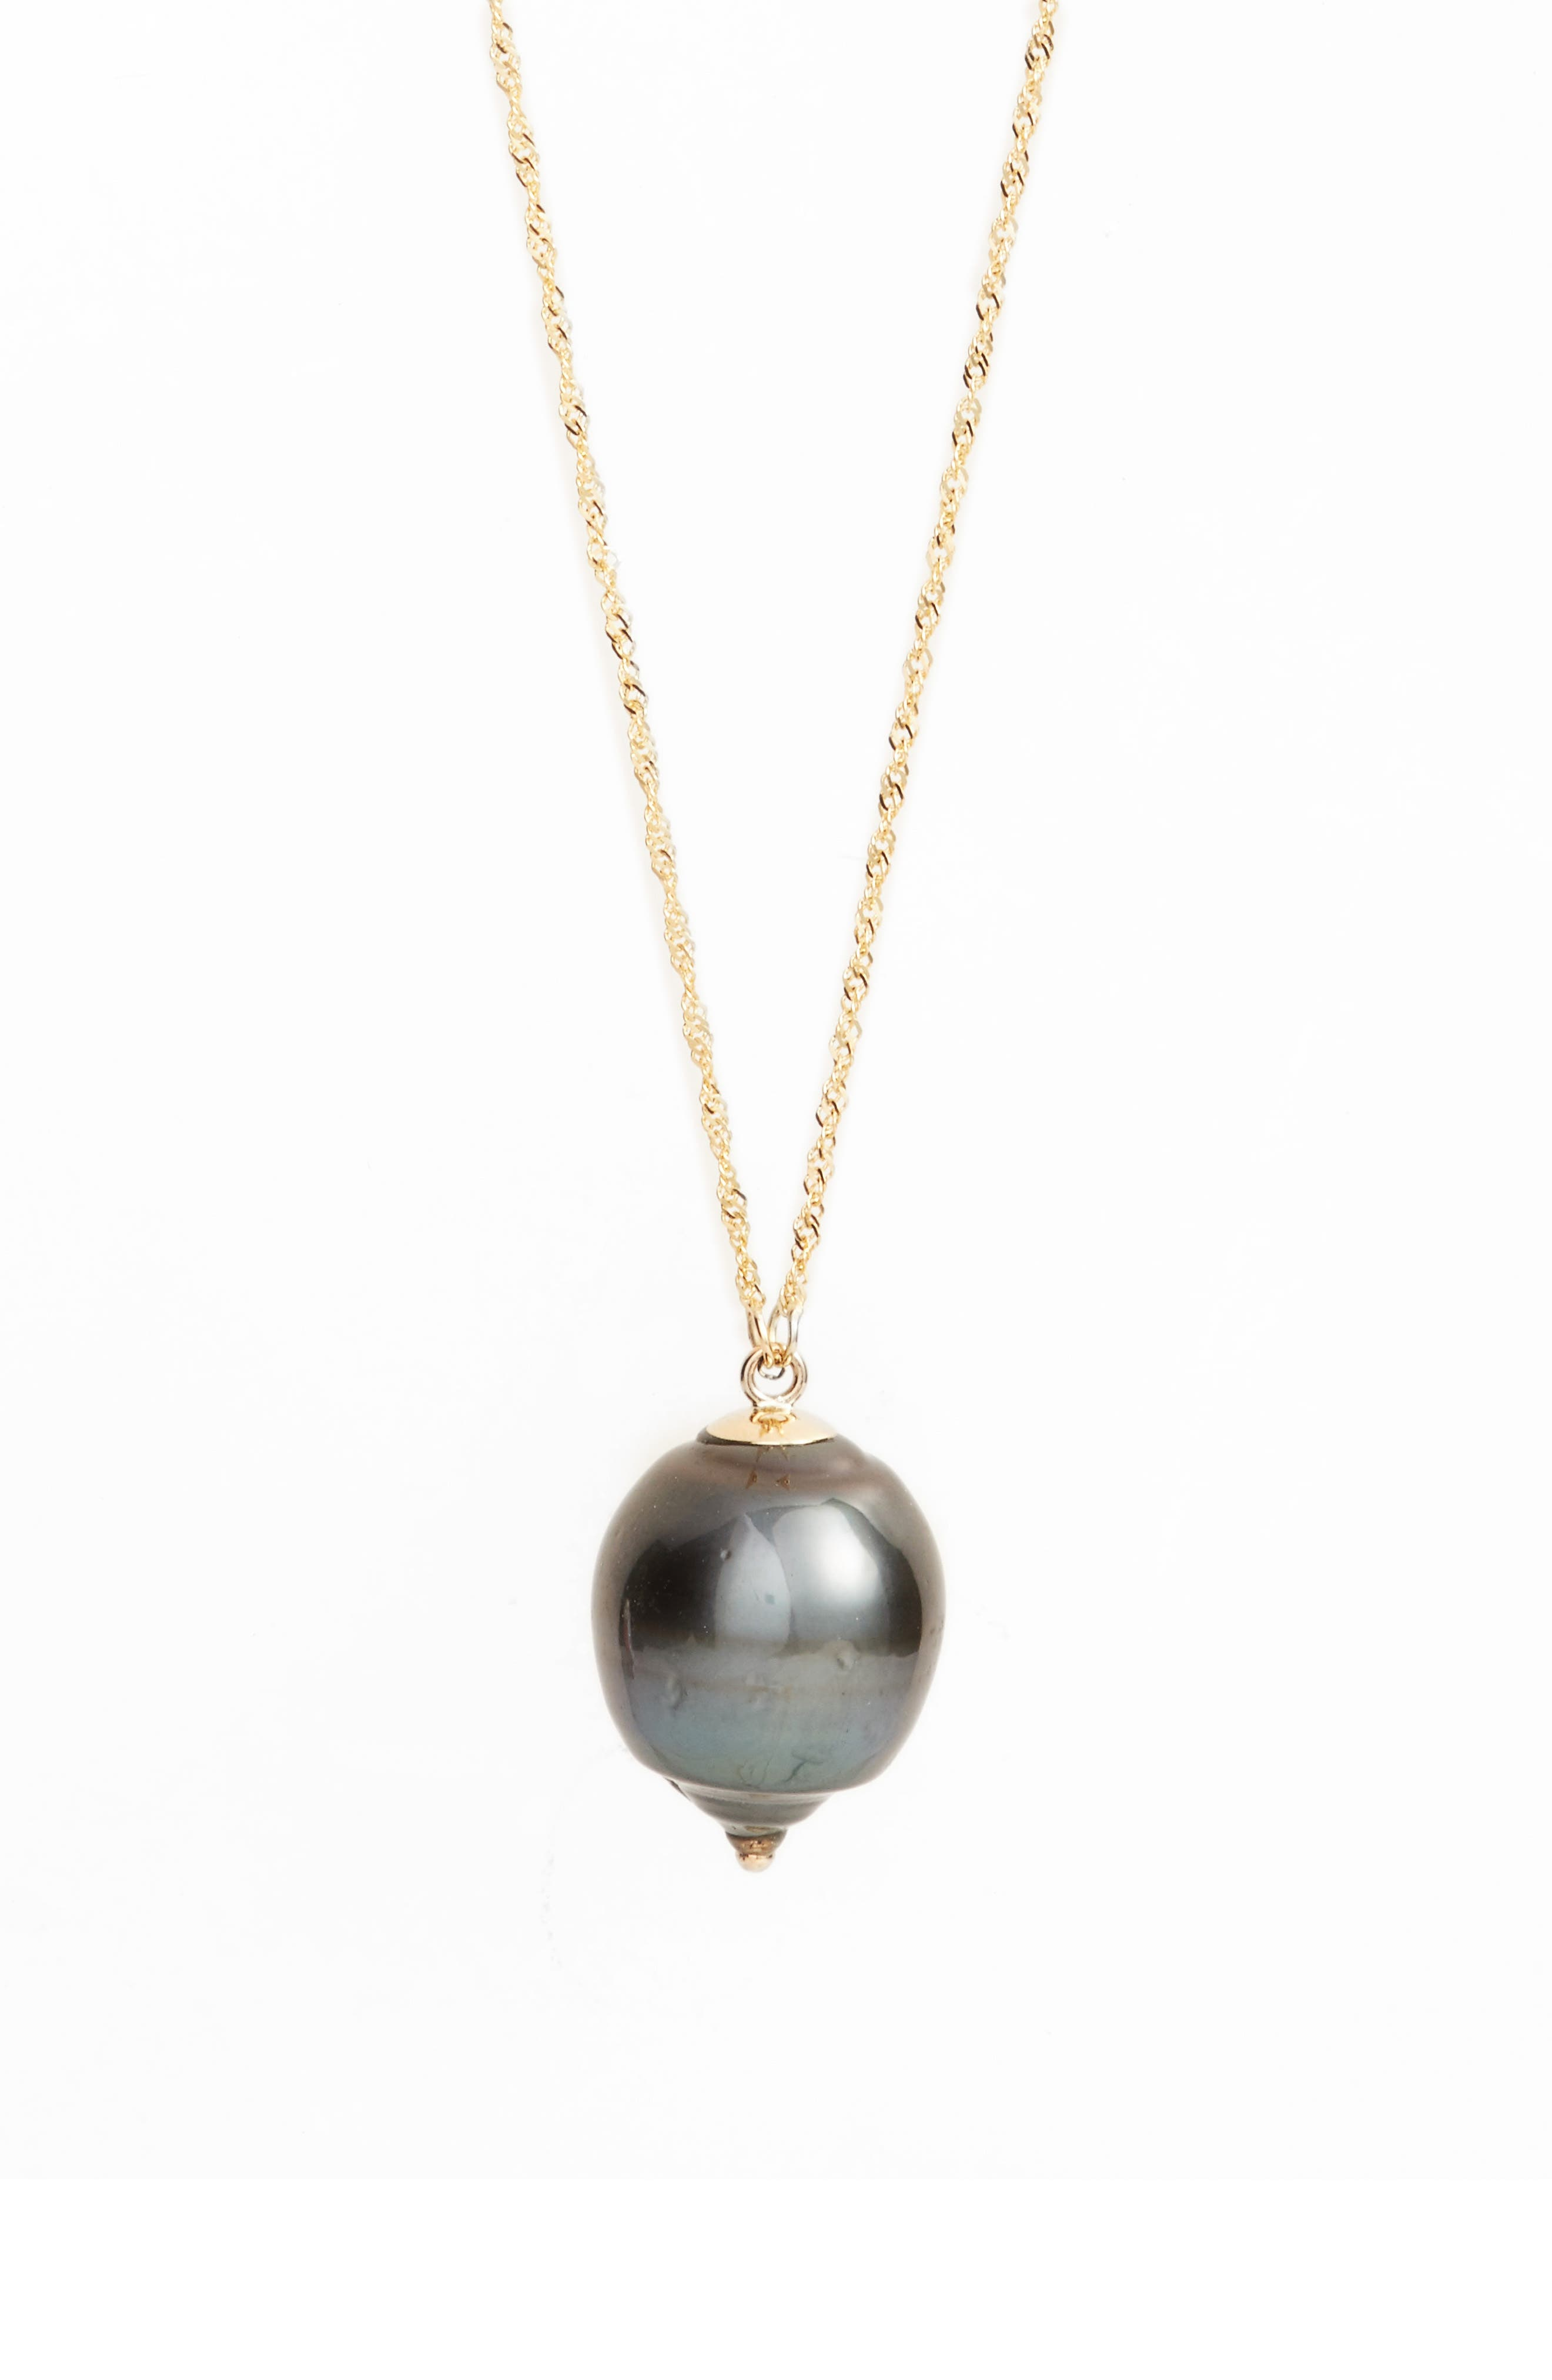 Long Pearl Pendant Necklace,                         Main,                         color, Yellow Gold/ Black Pearl